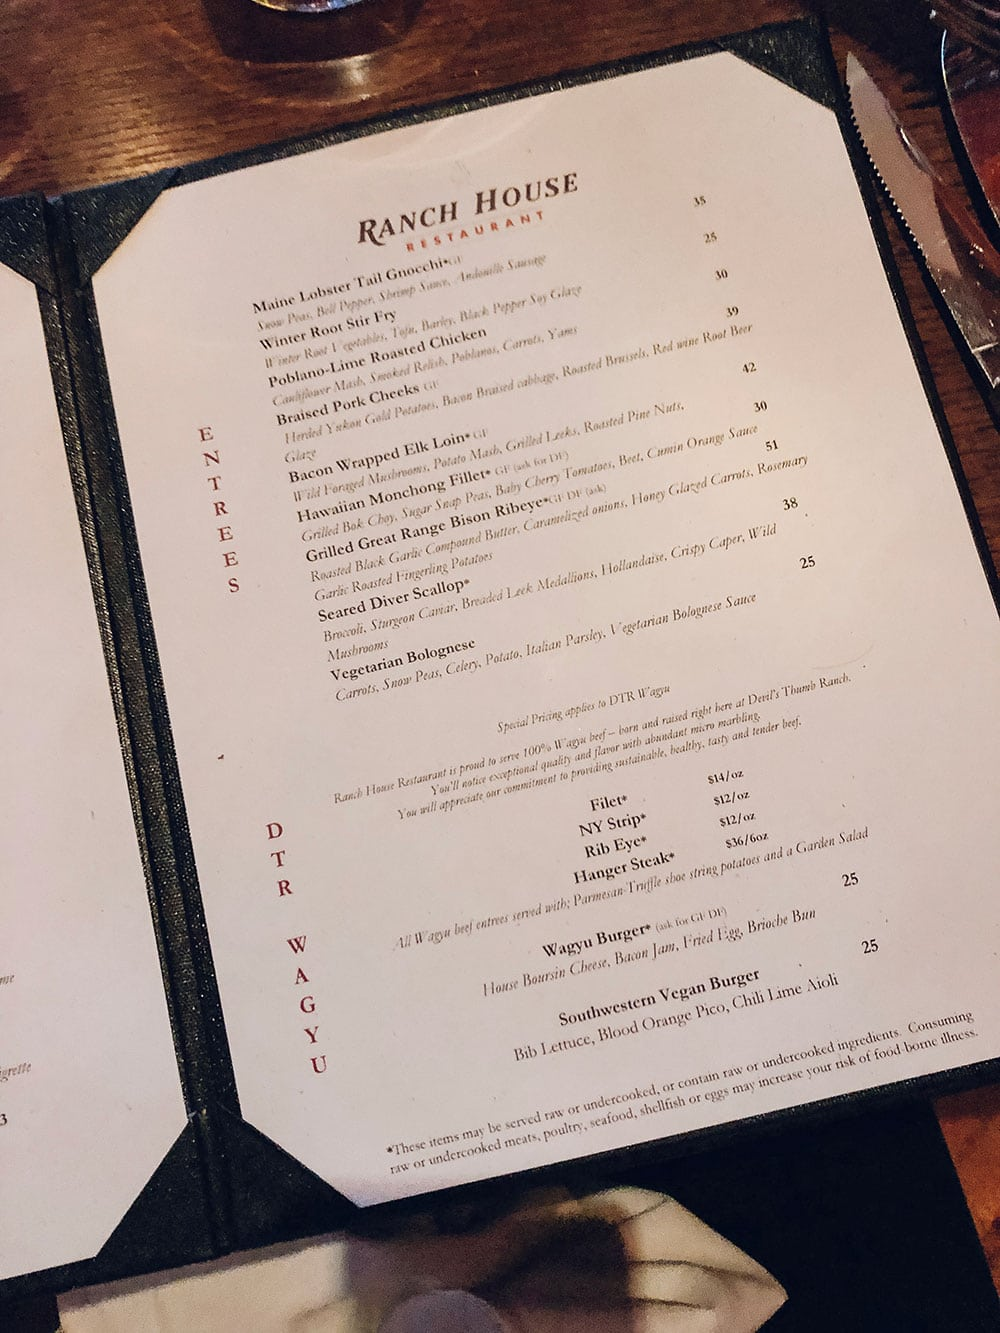 Houston blogger Meg O. shares her family trip to Winter Park Colorado - Ranch House Restaurant at Devil's Thumb Ranch is a must-do